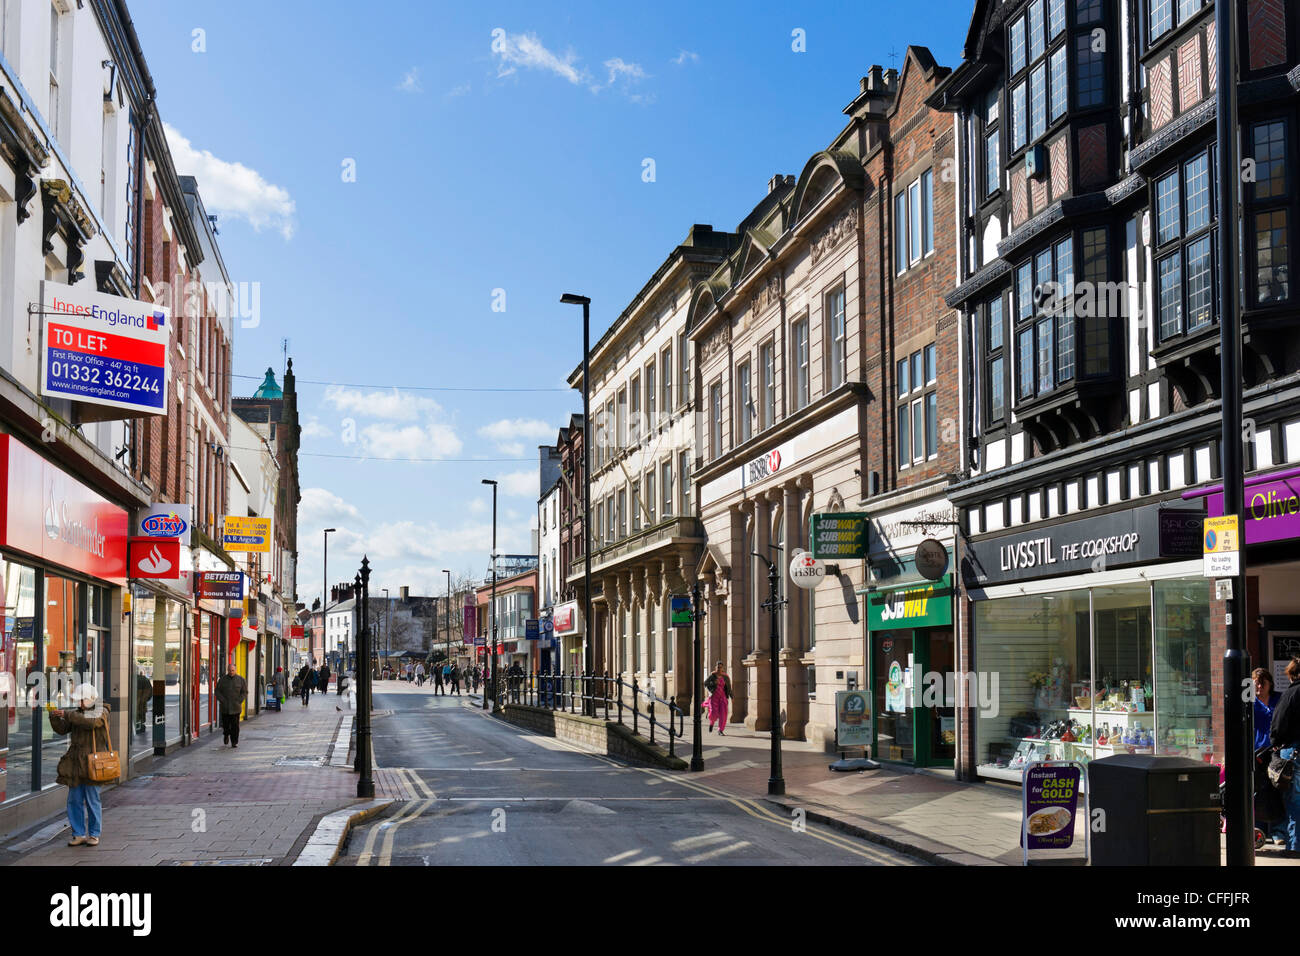 Shops on the High Street in Burton-upon-Trent, Staffordshire, England, UK - Stock Image